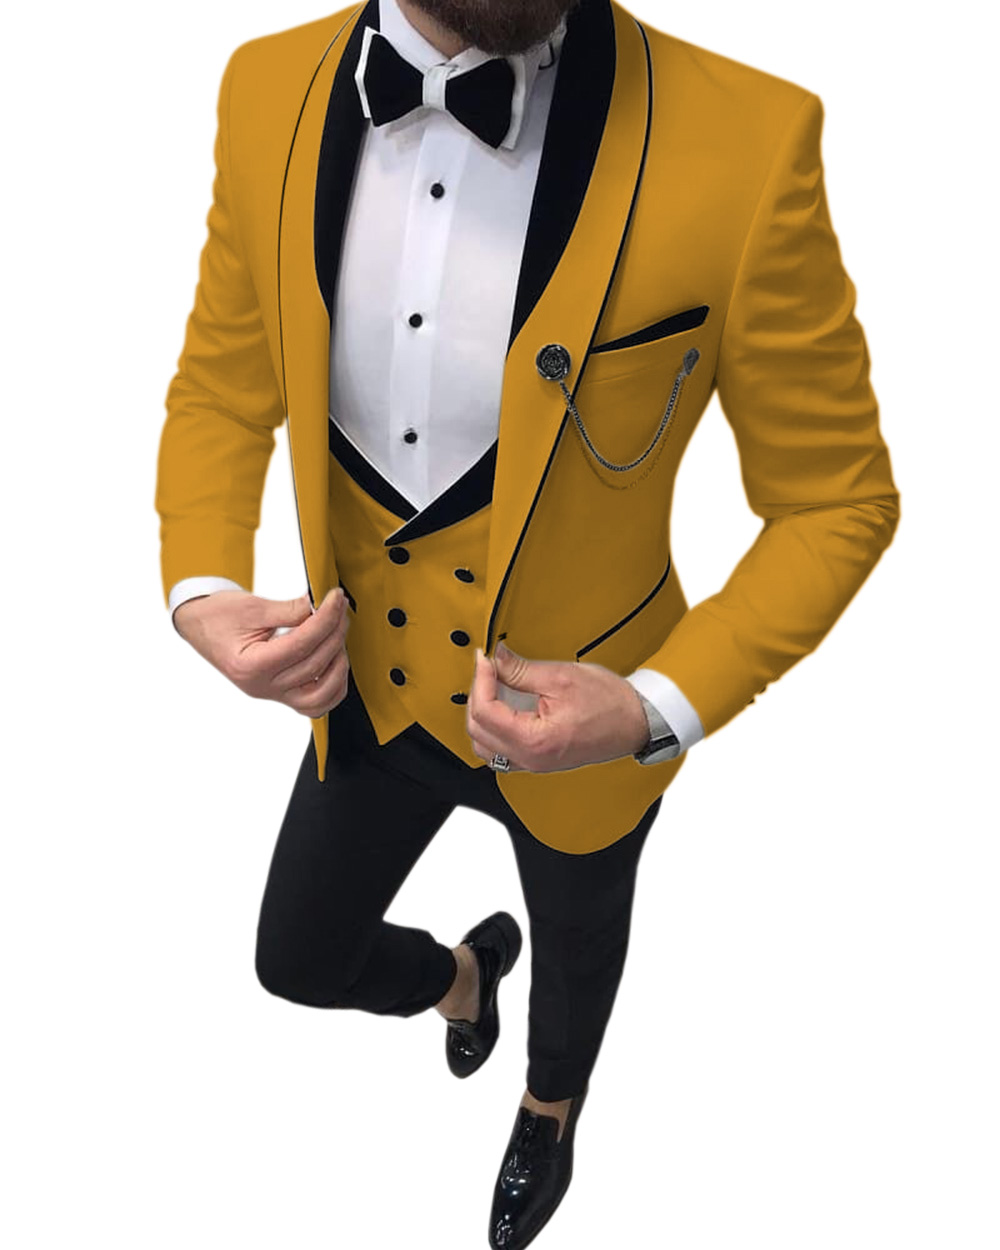 Men-s-Suits-Slim-Fit-3-Piece-Prom-Tuxedos-Shawl-Lapel-Double-Breasted-Vest-Tuxedos-Blazer